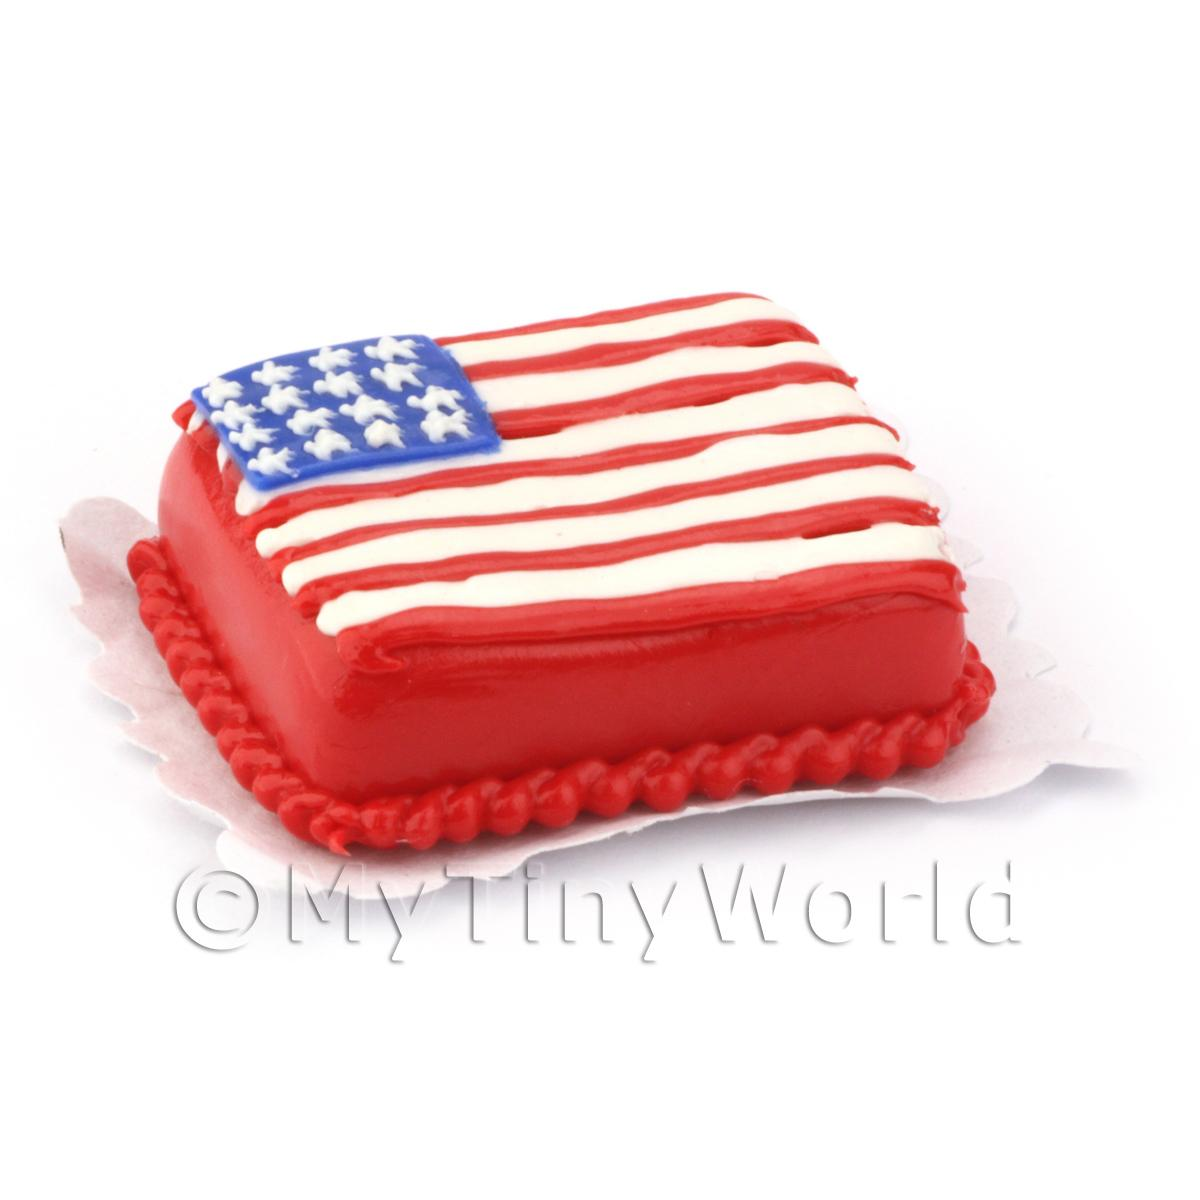 Dolls House Miniature Stars and Stripes Cake